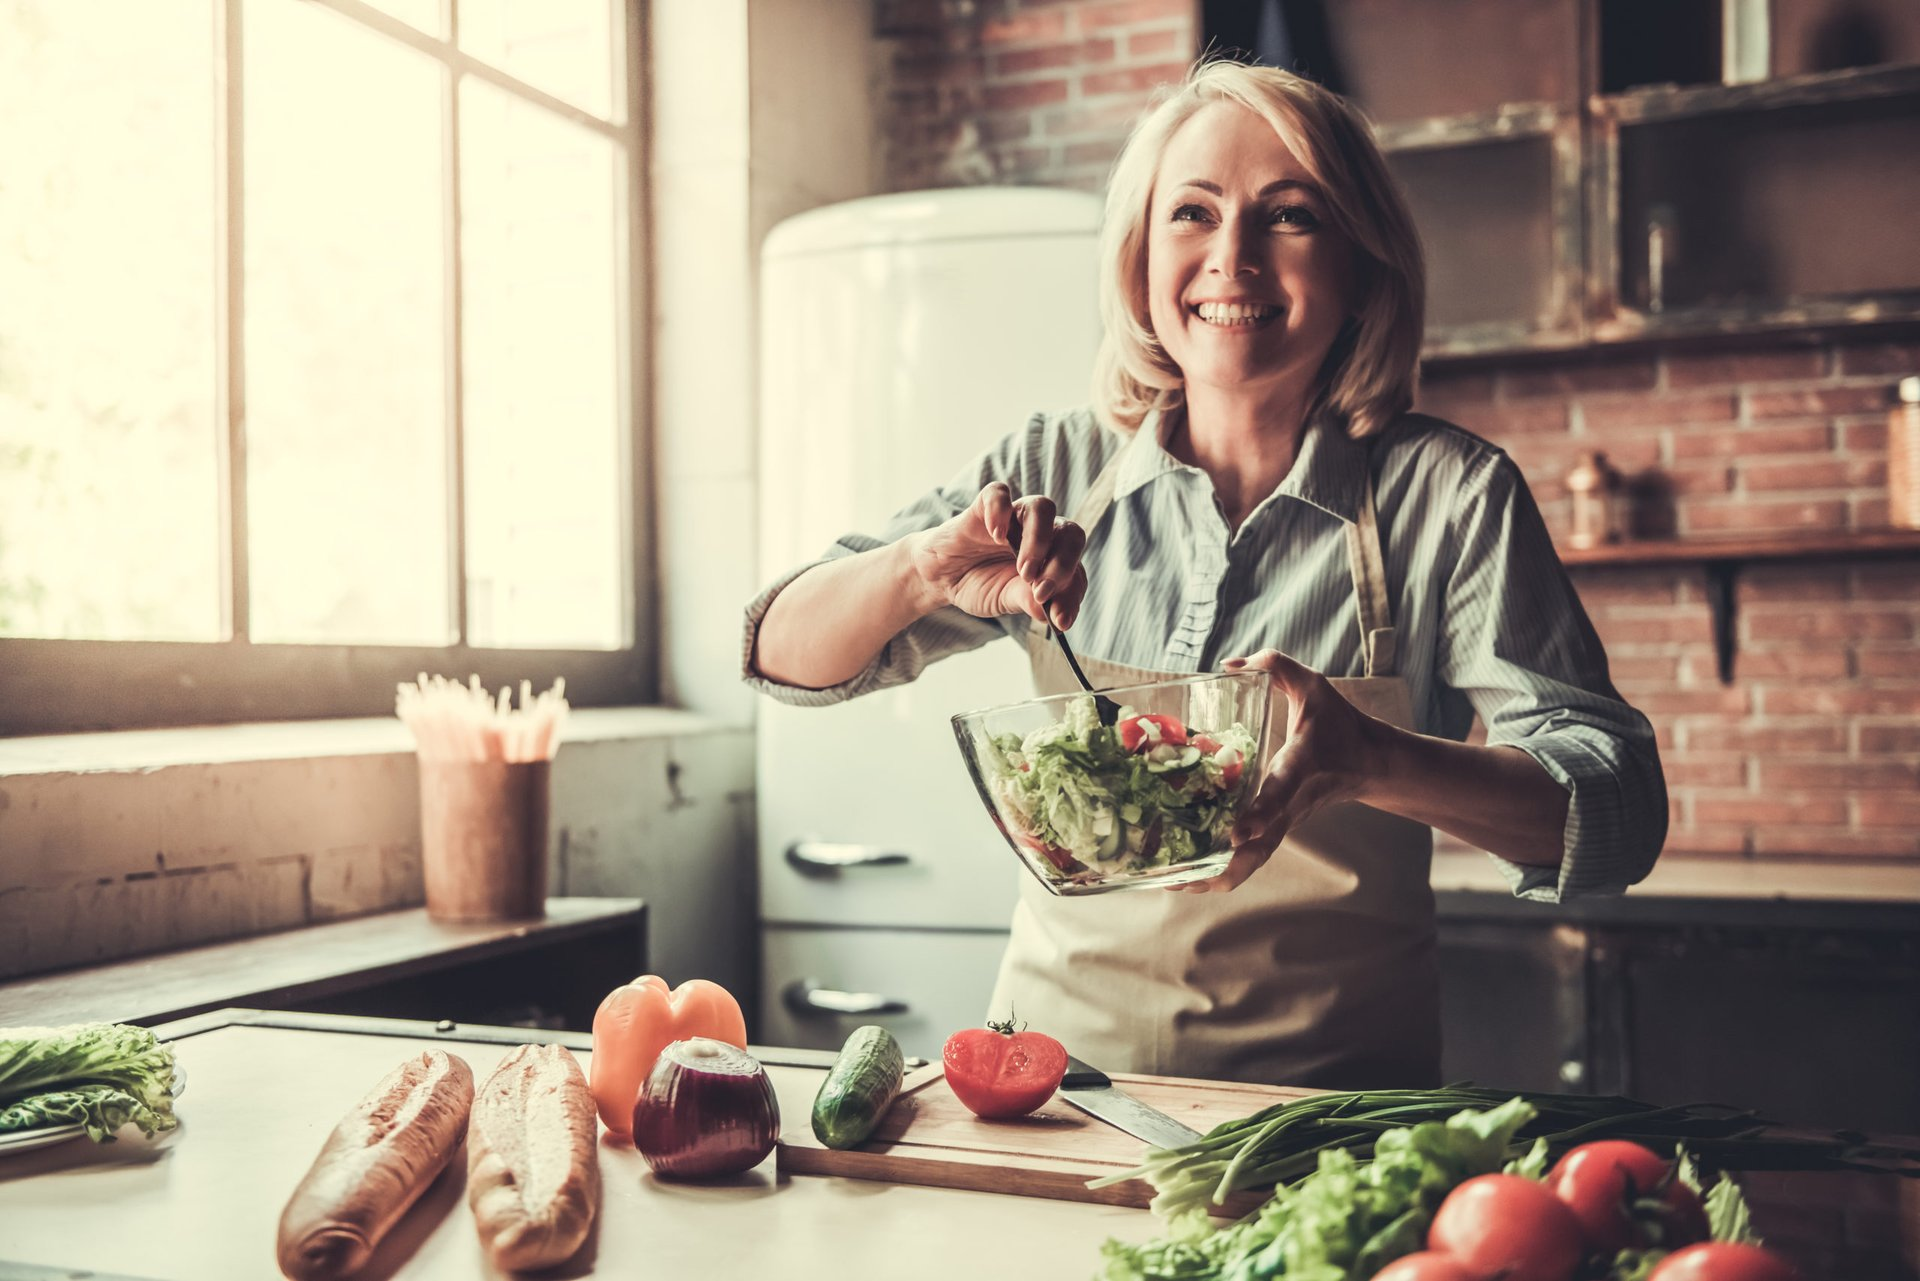 A woman makes a salad in her kitchen